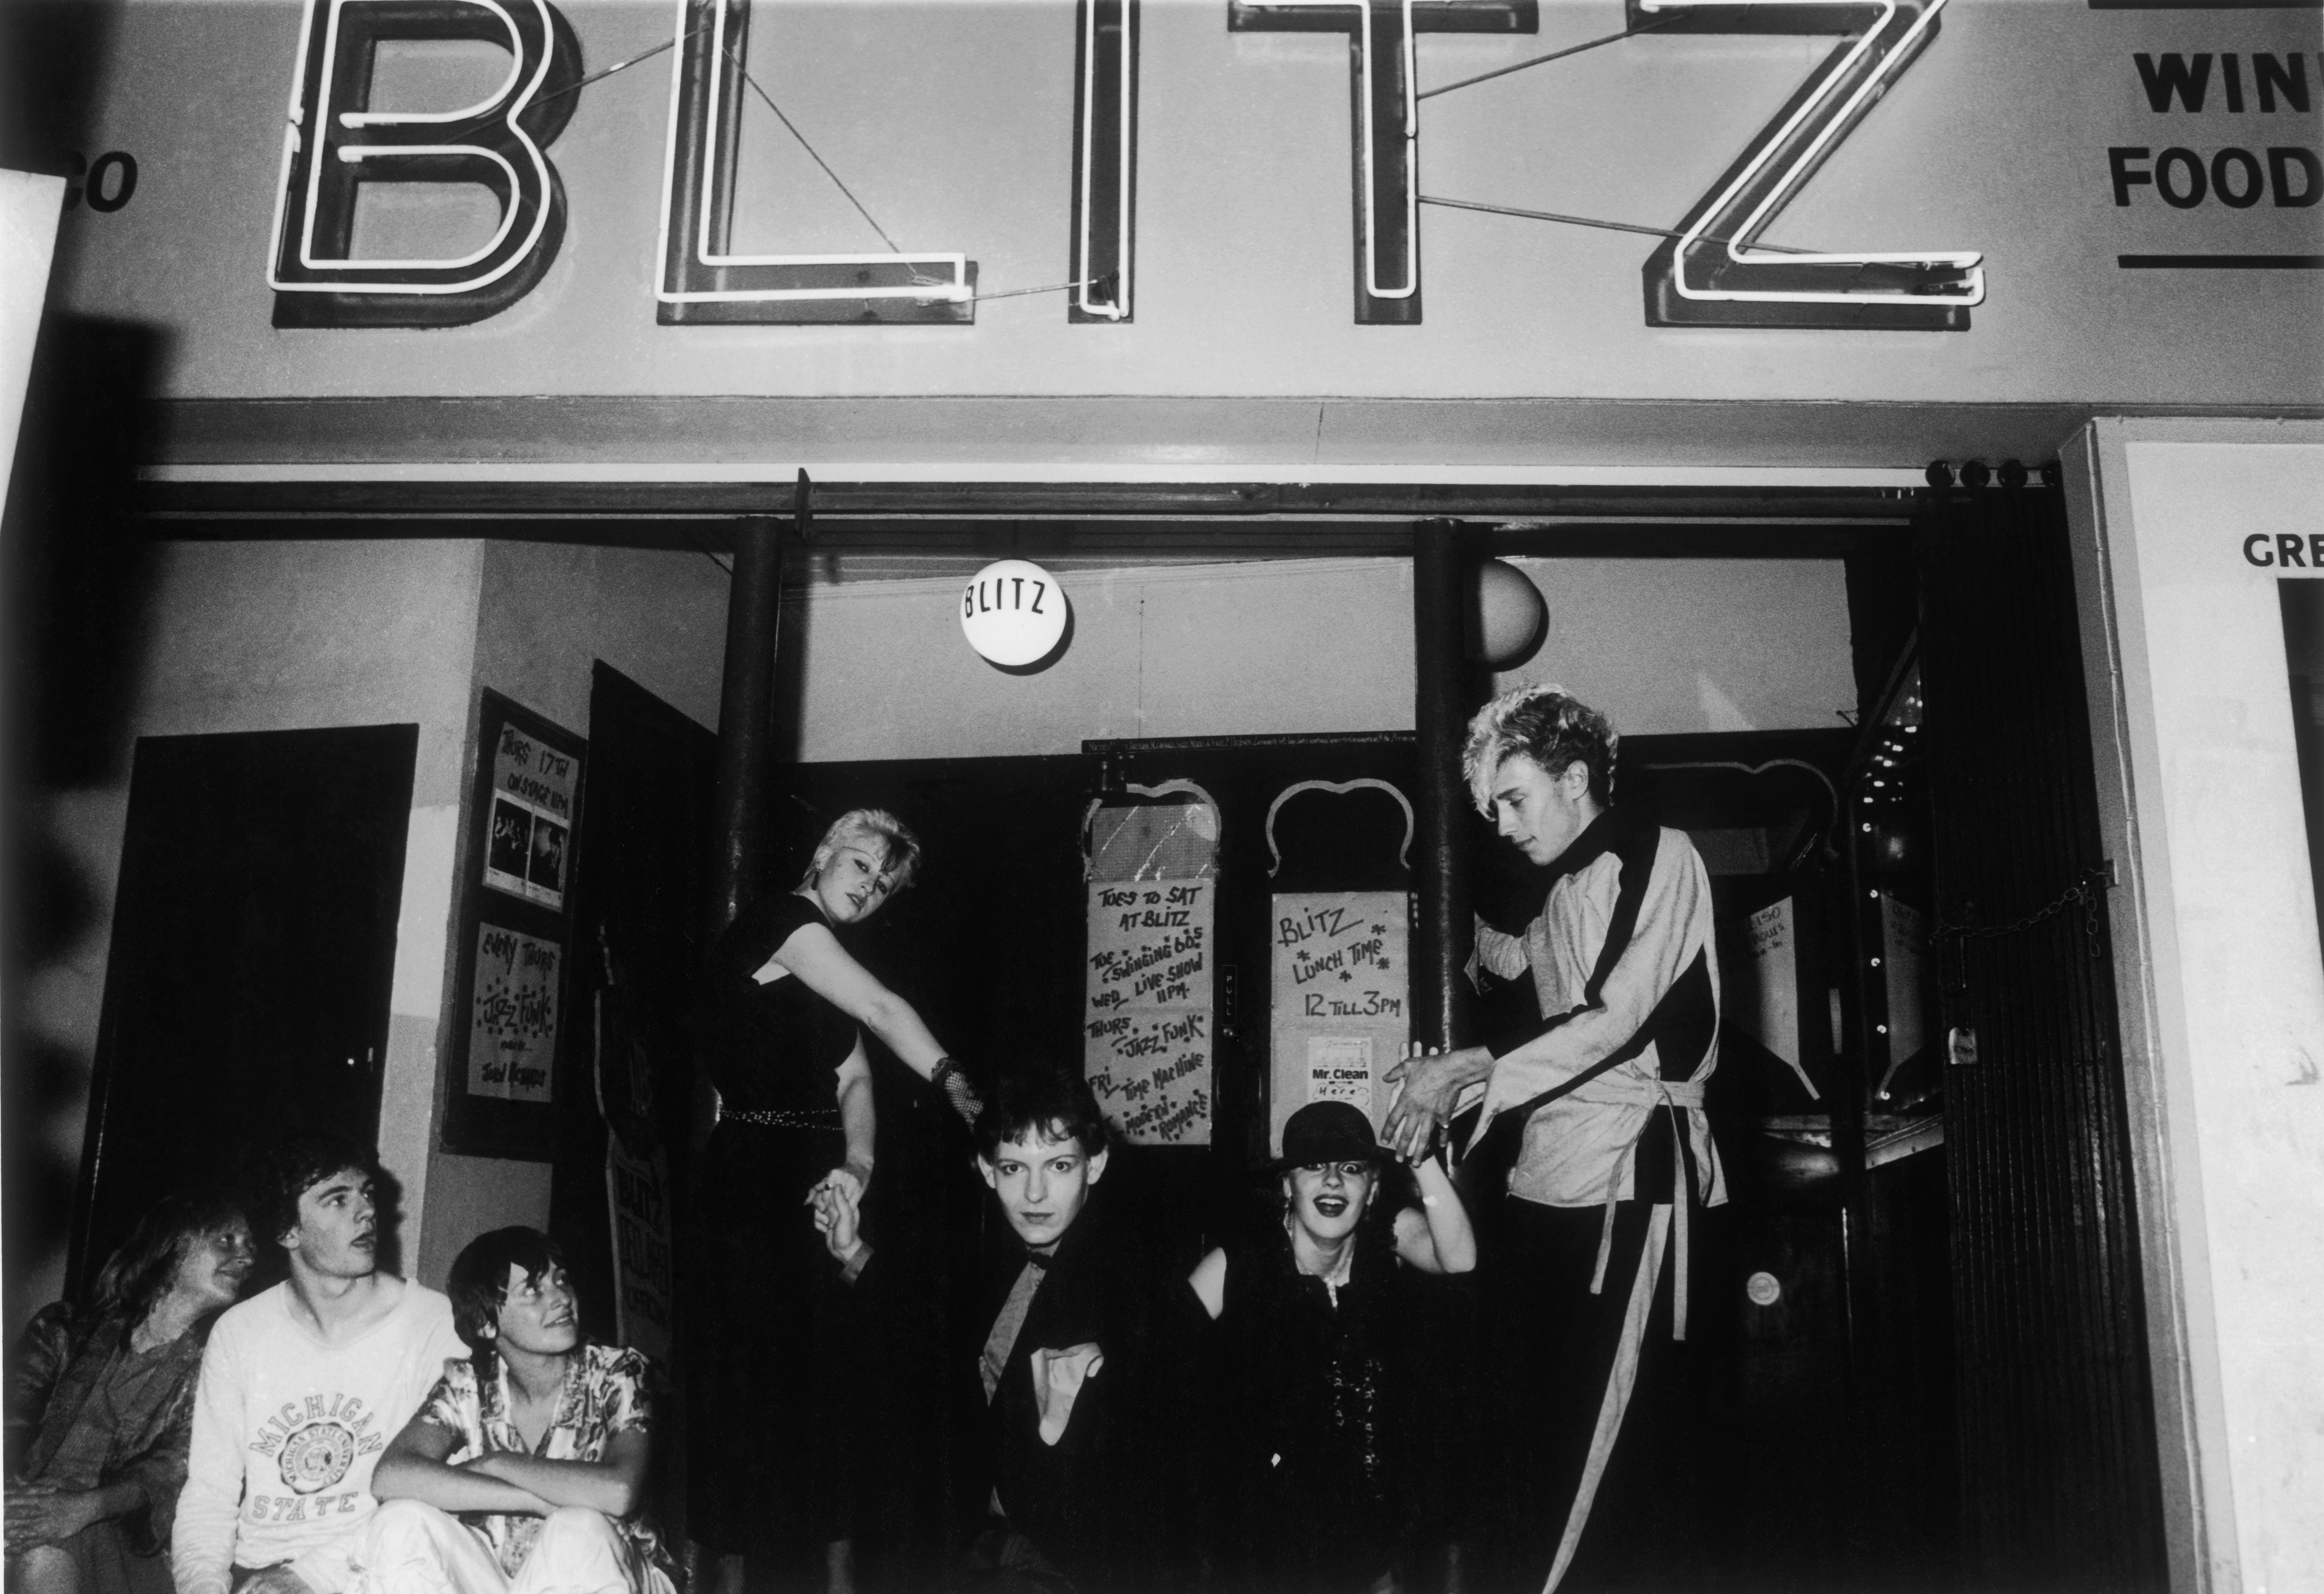 A group of young people dressed in 'New Romantic' fashion on the steps of the Blitz nightclub in Covent Garden, c.1980. The Blitz club is widely regarded as being the birth place of the New Romantics in the early 1980s and those who frequented it were known as 'Blitz Kids'. One of these was Boy George.